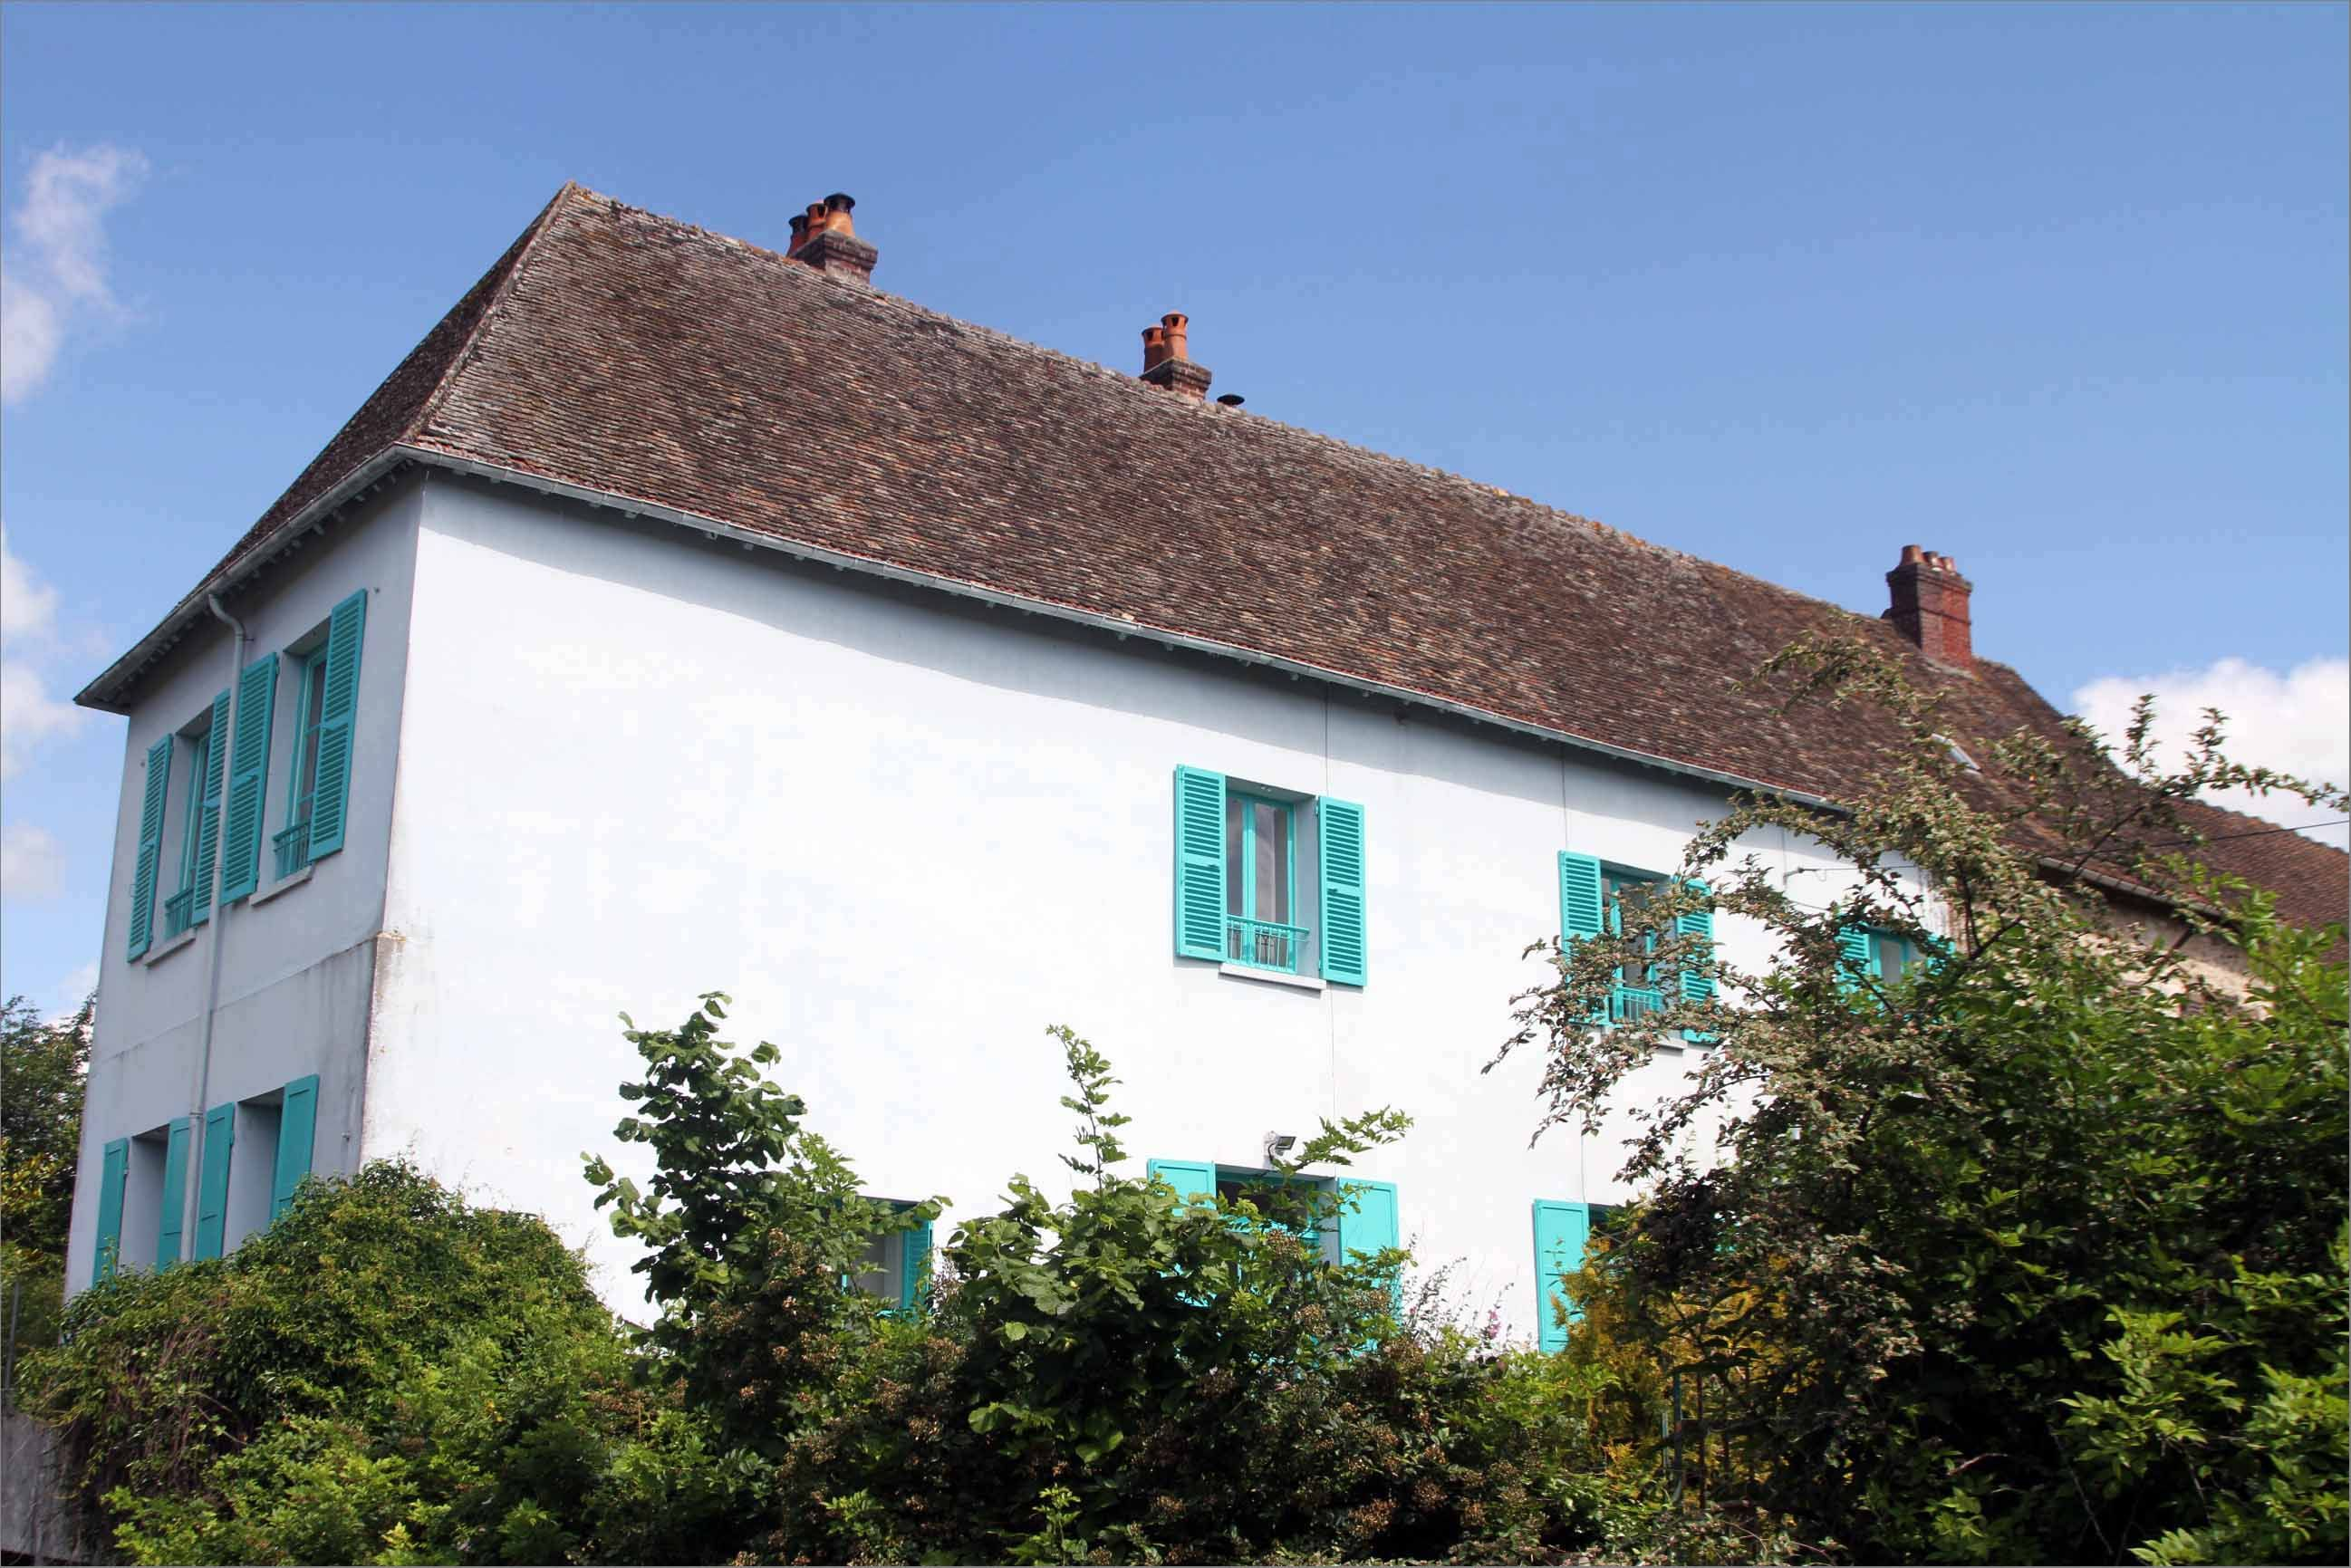 You can now stay in Claude Monet's beautiful blue house in France